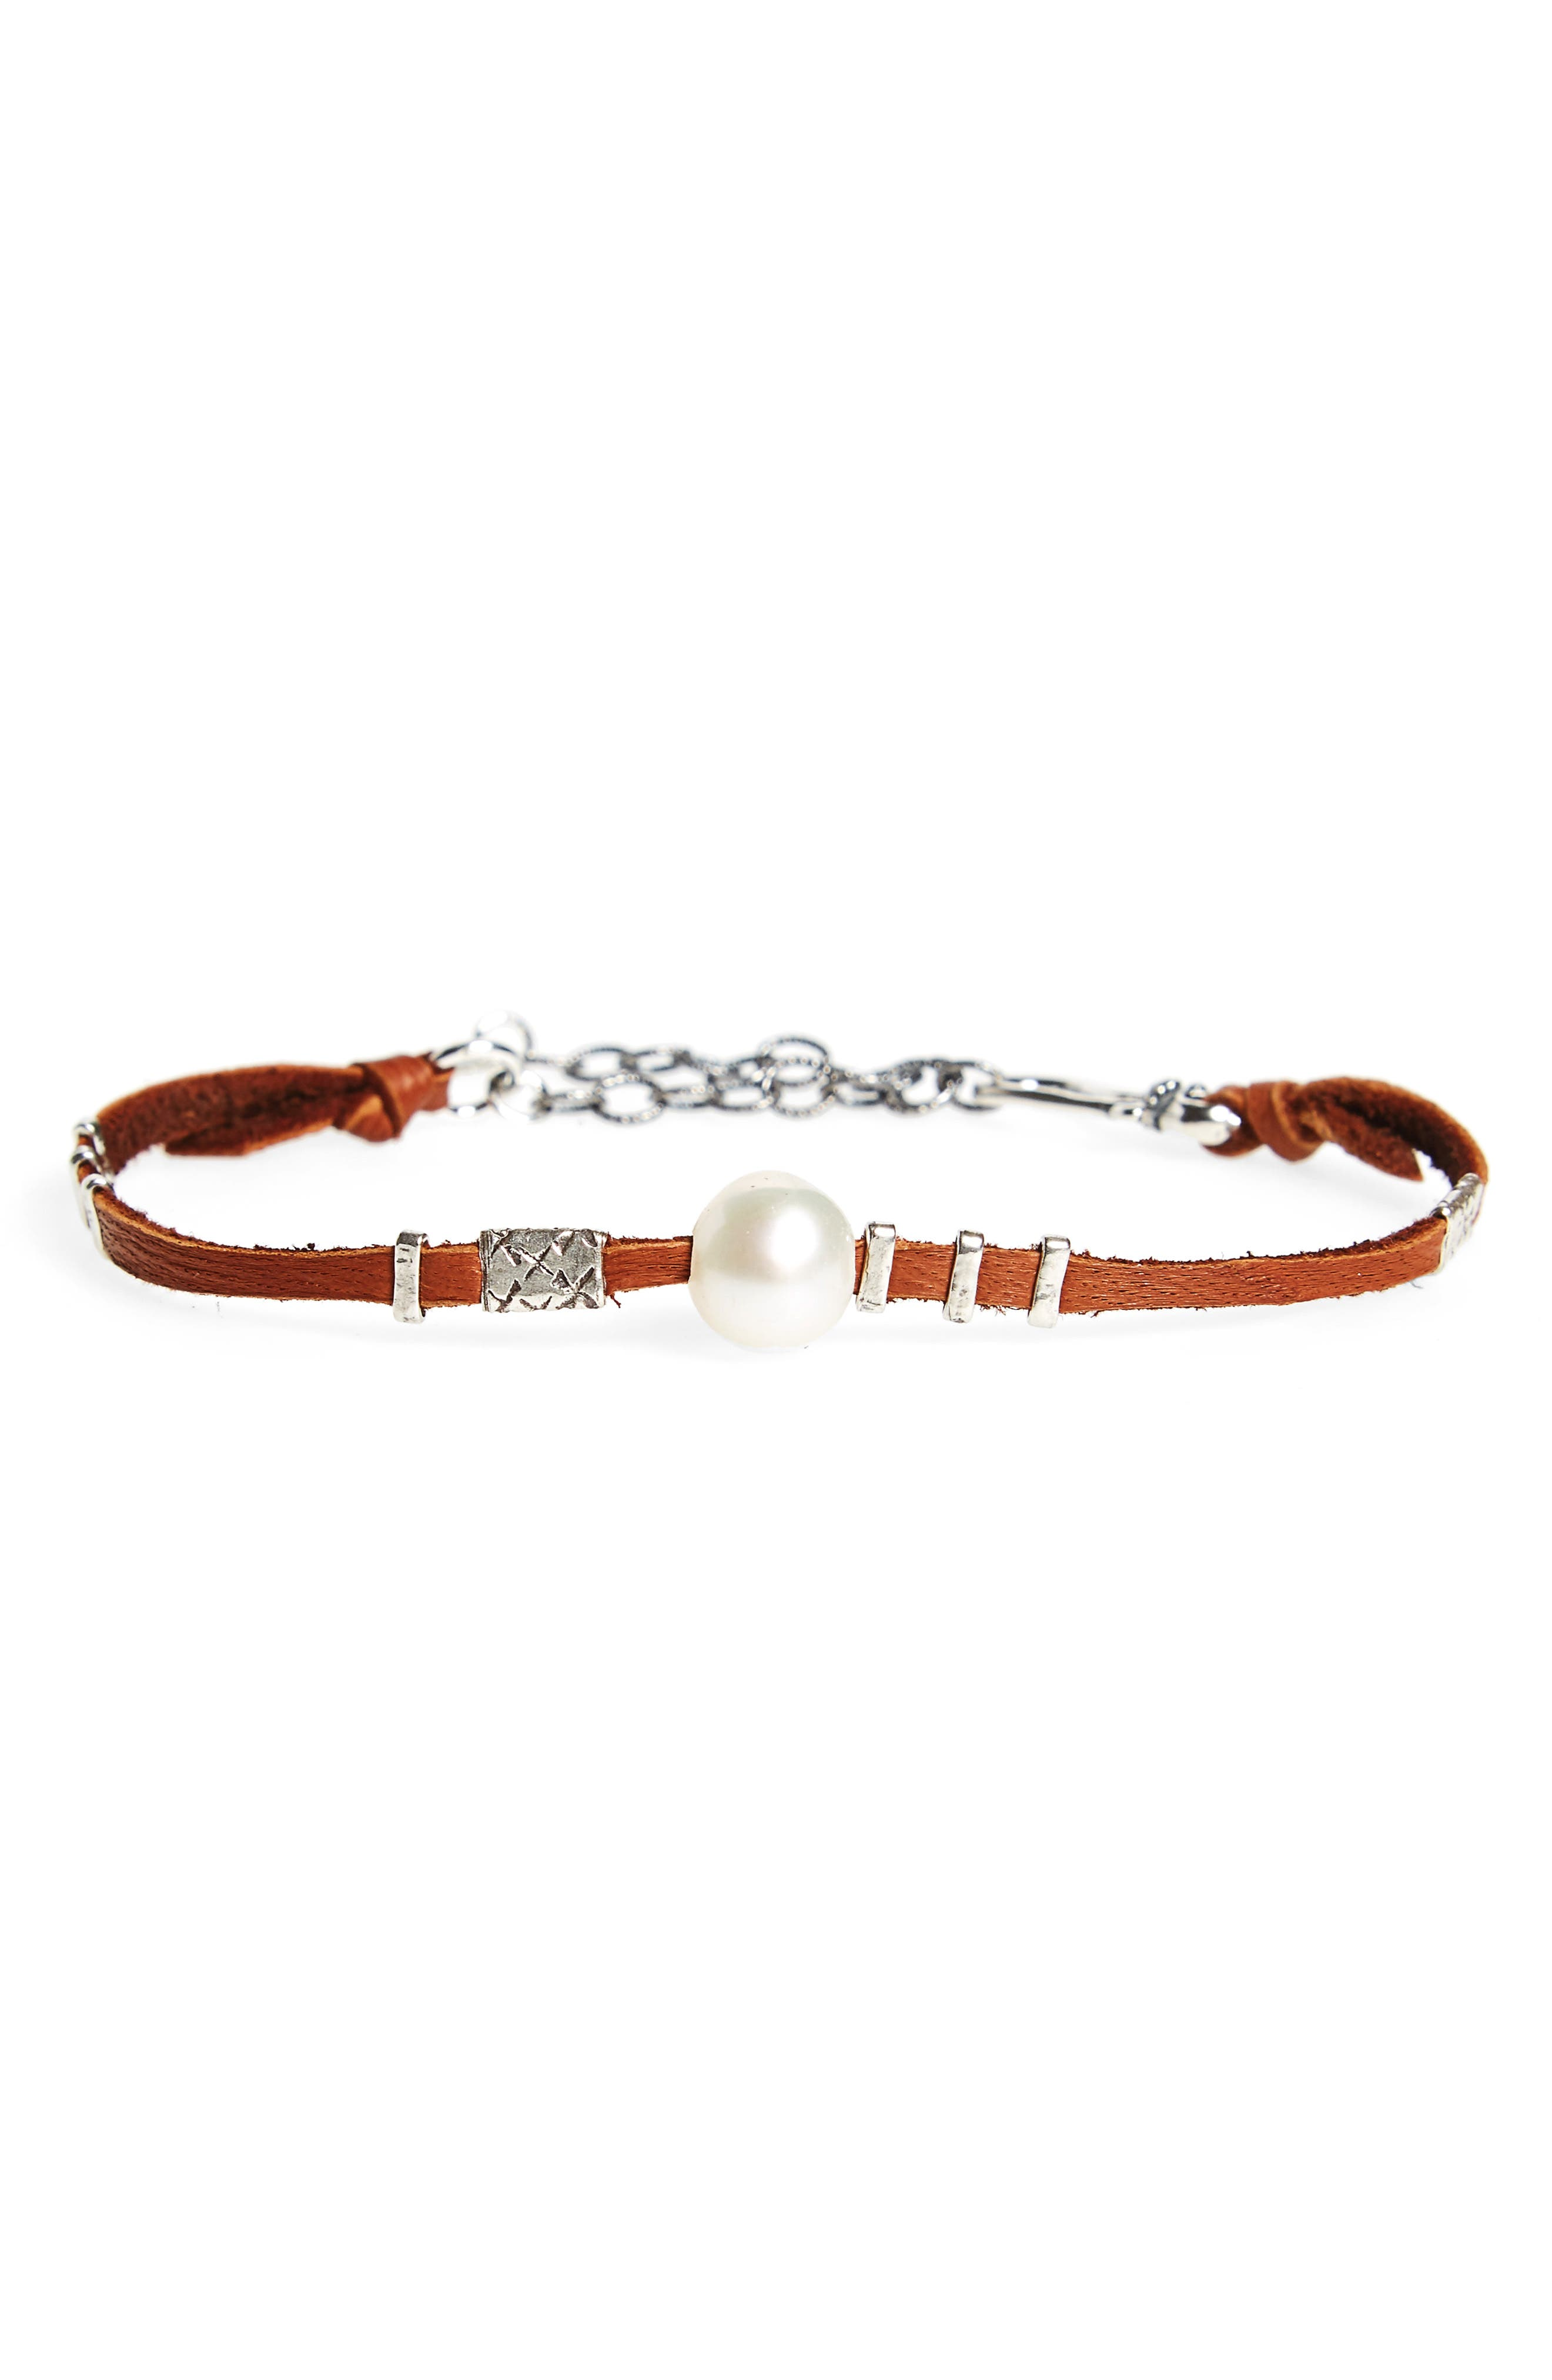 Chan Luu Pearl & Leather Bracelet